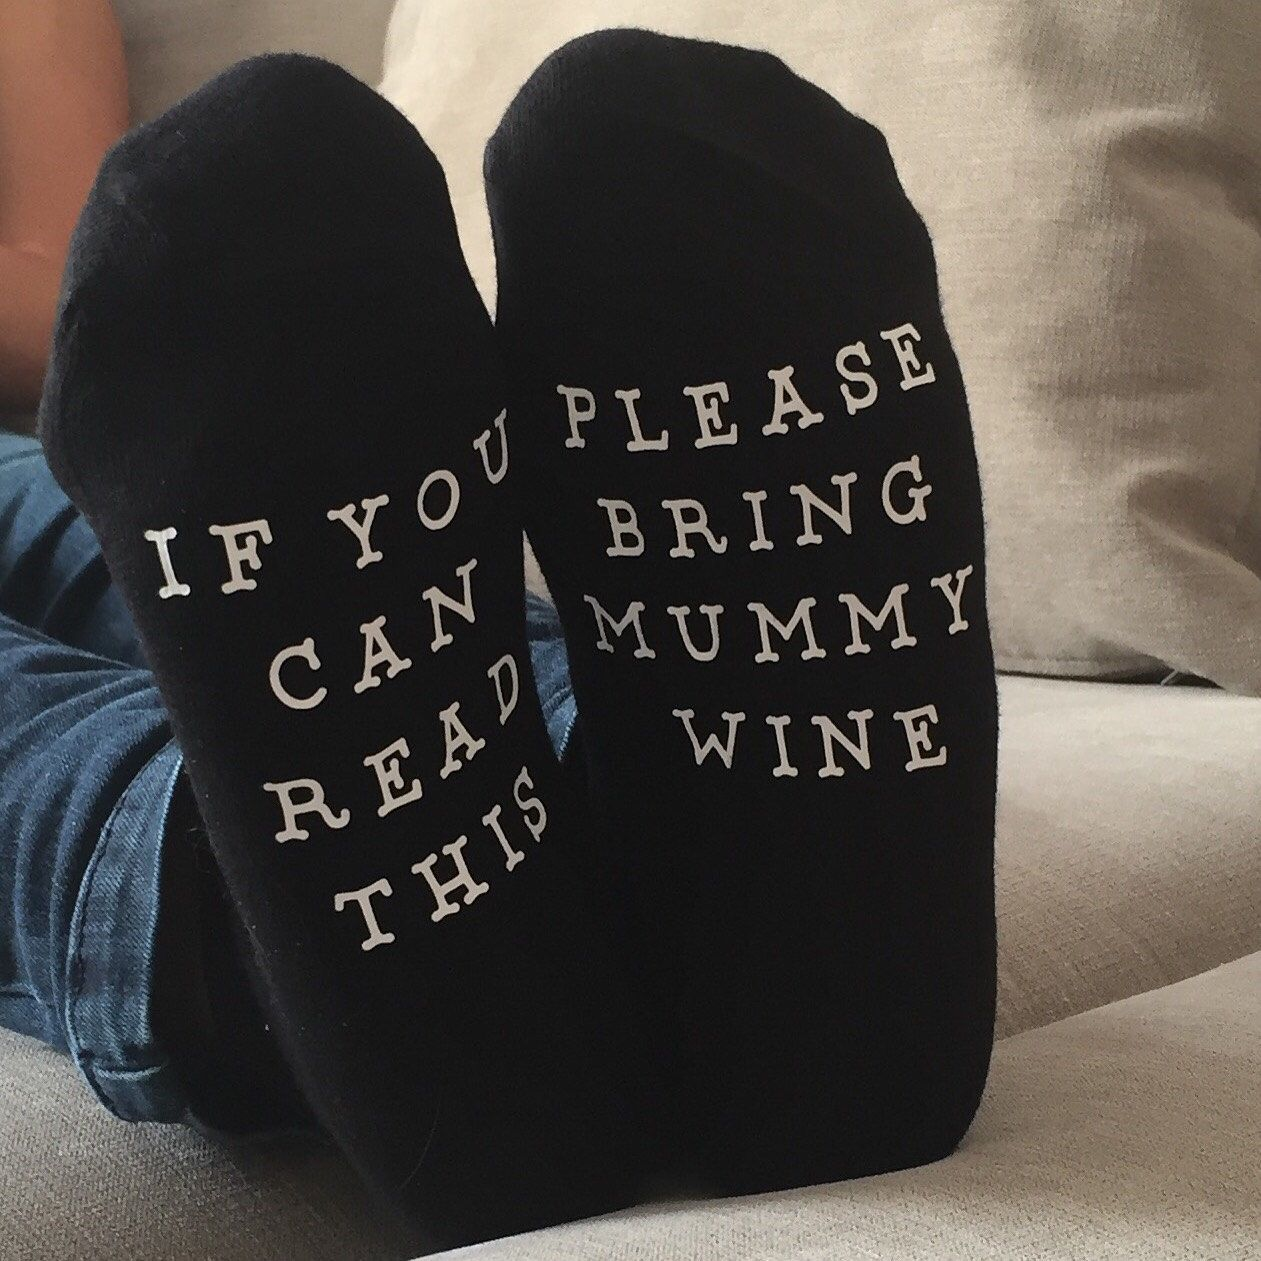 Personalised Socks If You Can Read This Bring Socks Funny